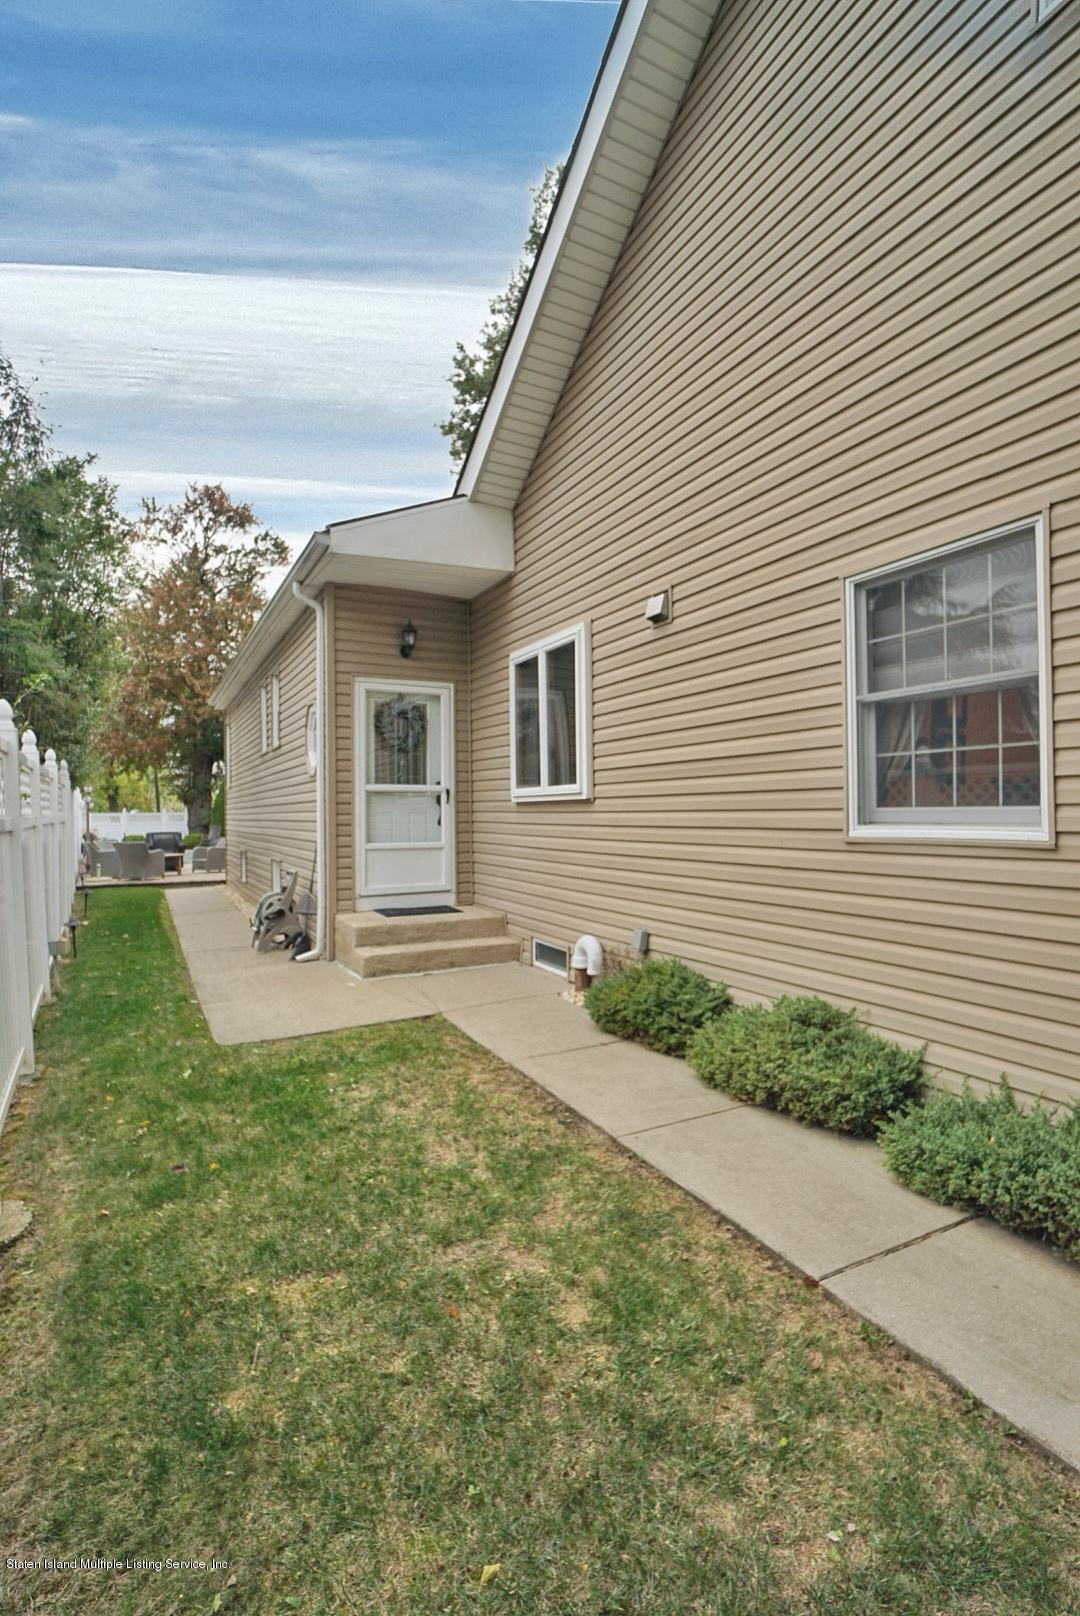 Single Family - Detached 20 Midland Road  Staten Island, NY 10308, MLS-1131101-42